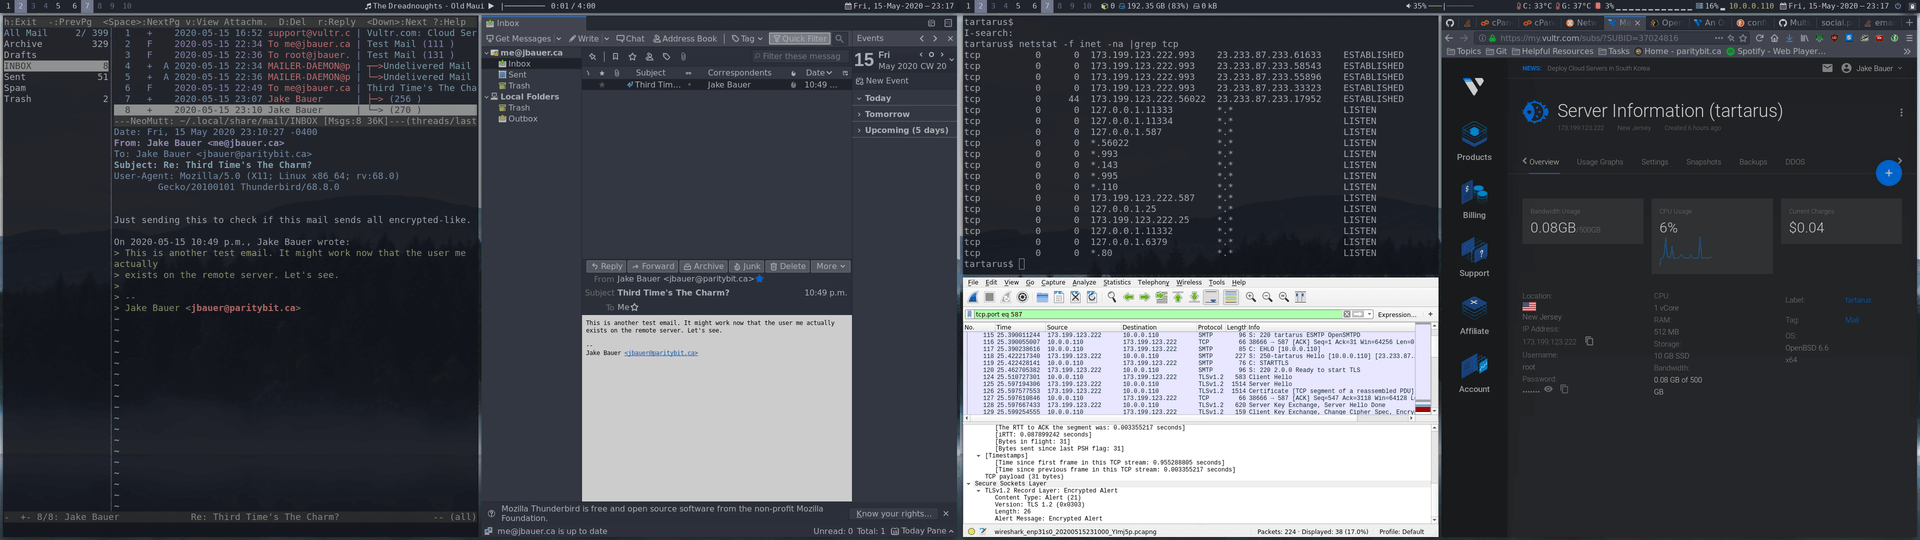 A screenshot of both of my     monitors with Neomutt, Thunderbird, Wireshark, SSH, and Firefox with Vultr     open while testing if email is working.